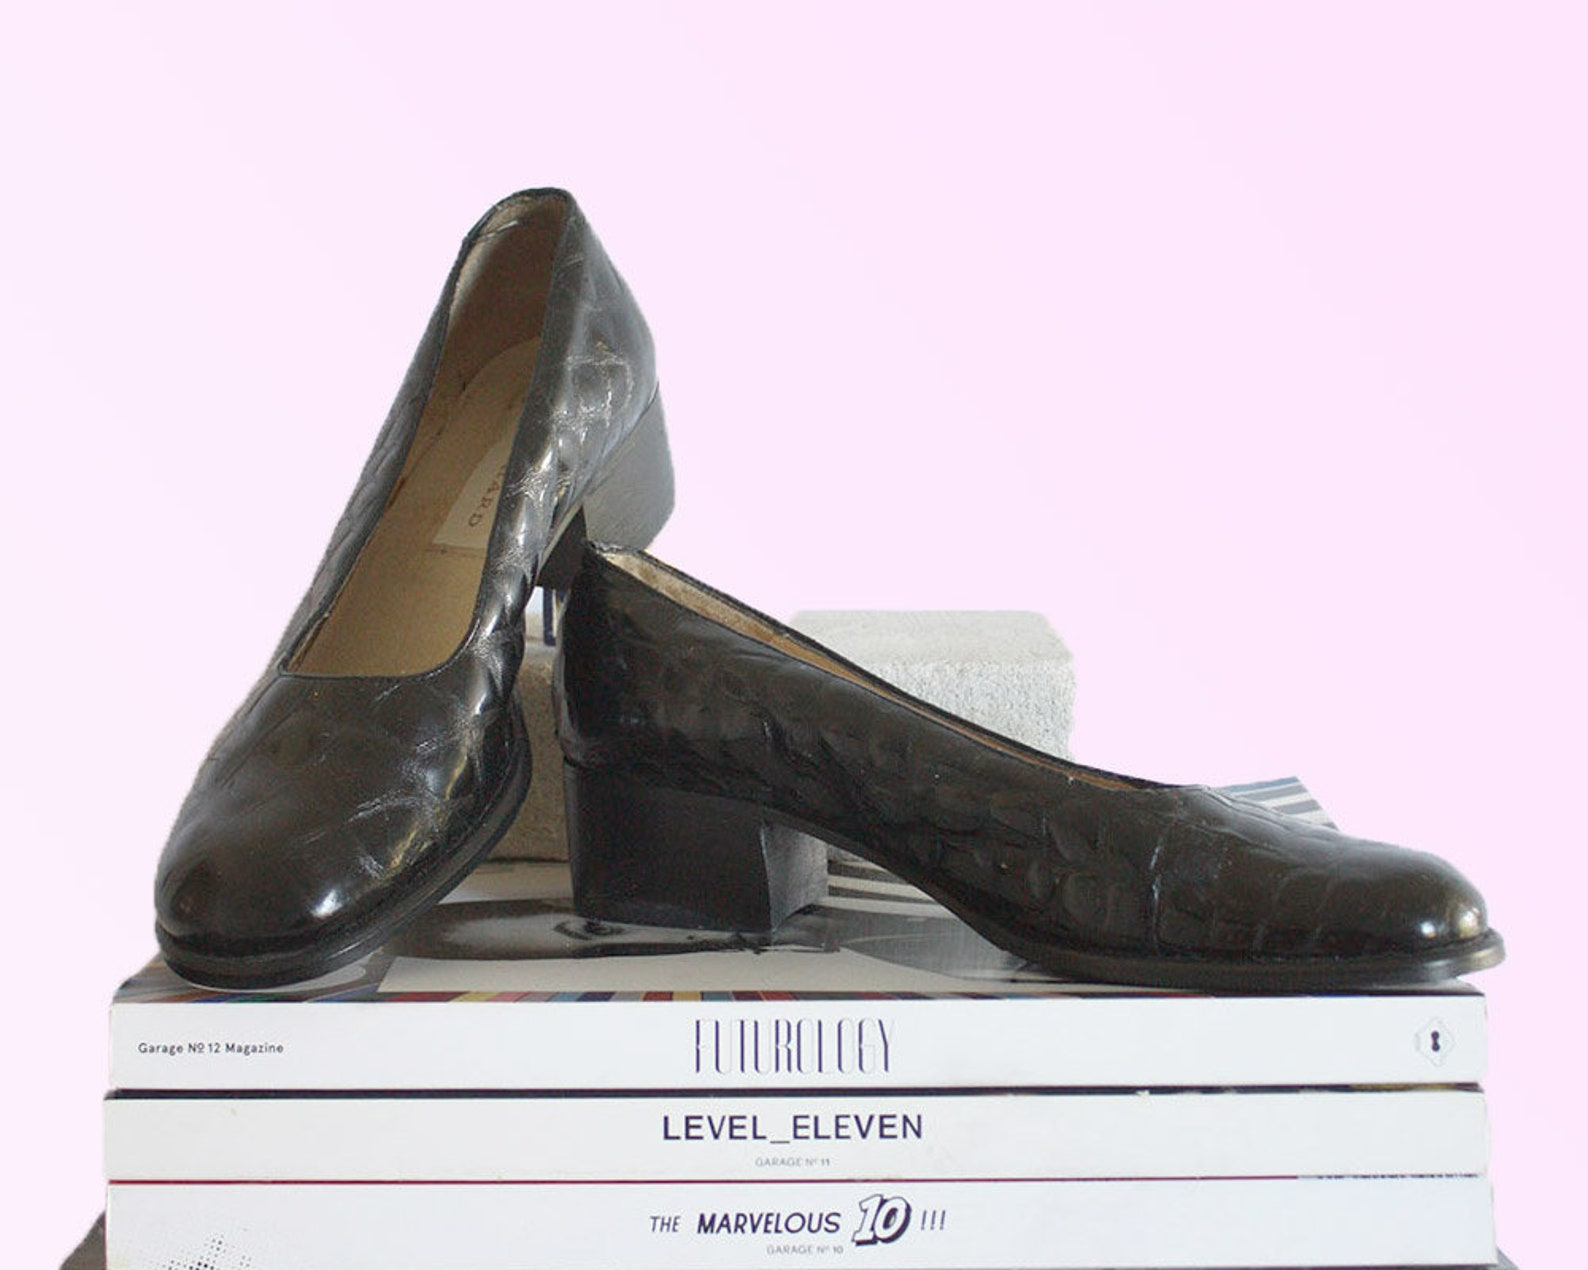 80s black patent leather ballet pumps rounded toe croc print sleek chic city girl